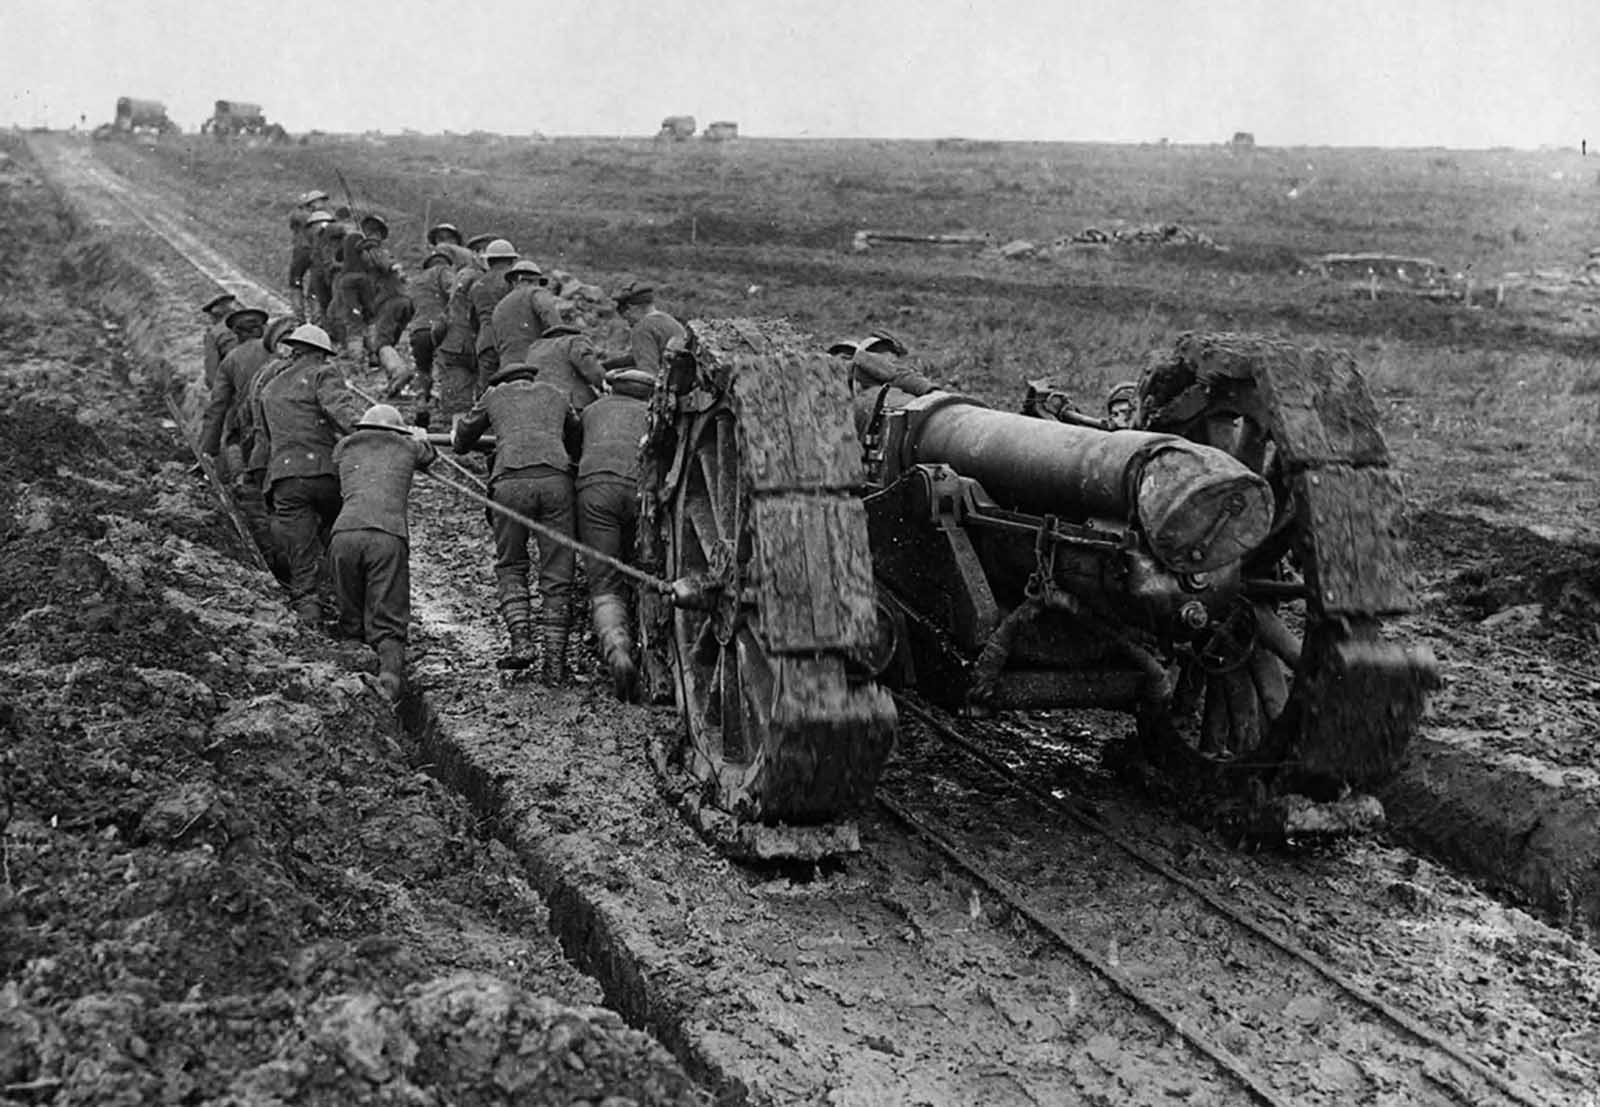 Soldiers struggle to pull a huge piece of artillery through mud. The gun has been placed on a track created for a light railway. The soldiers are pushing a device, attached to the gun, that possibly slots into the tracks. Some of the men are in a ditch that runs alongside the track, the rest are on the track itself. A makeshift caterpillar tread has been fitted to the wheels of the gun, in an attempt to aid its movement through the mud.